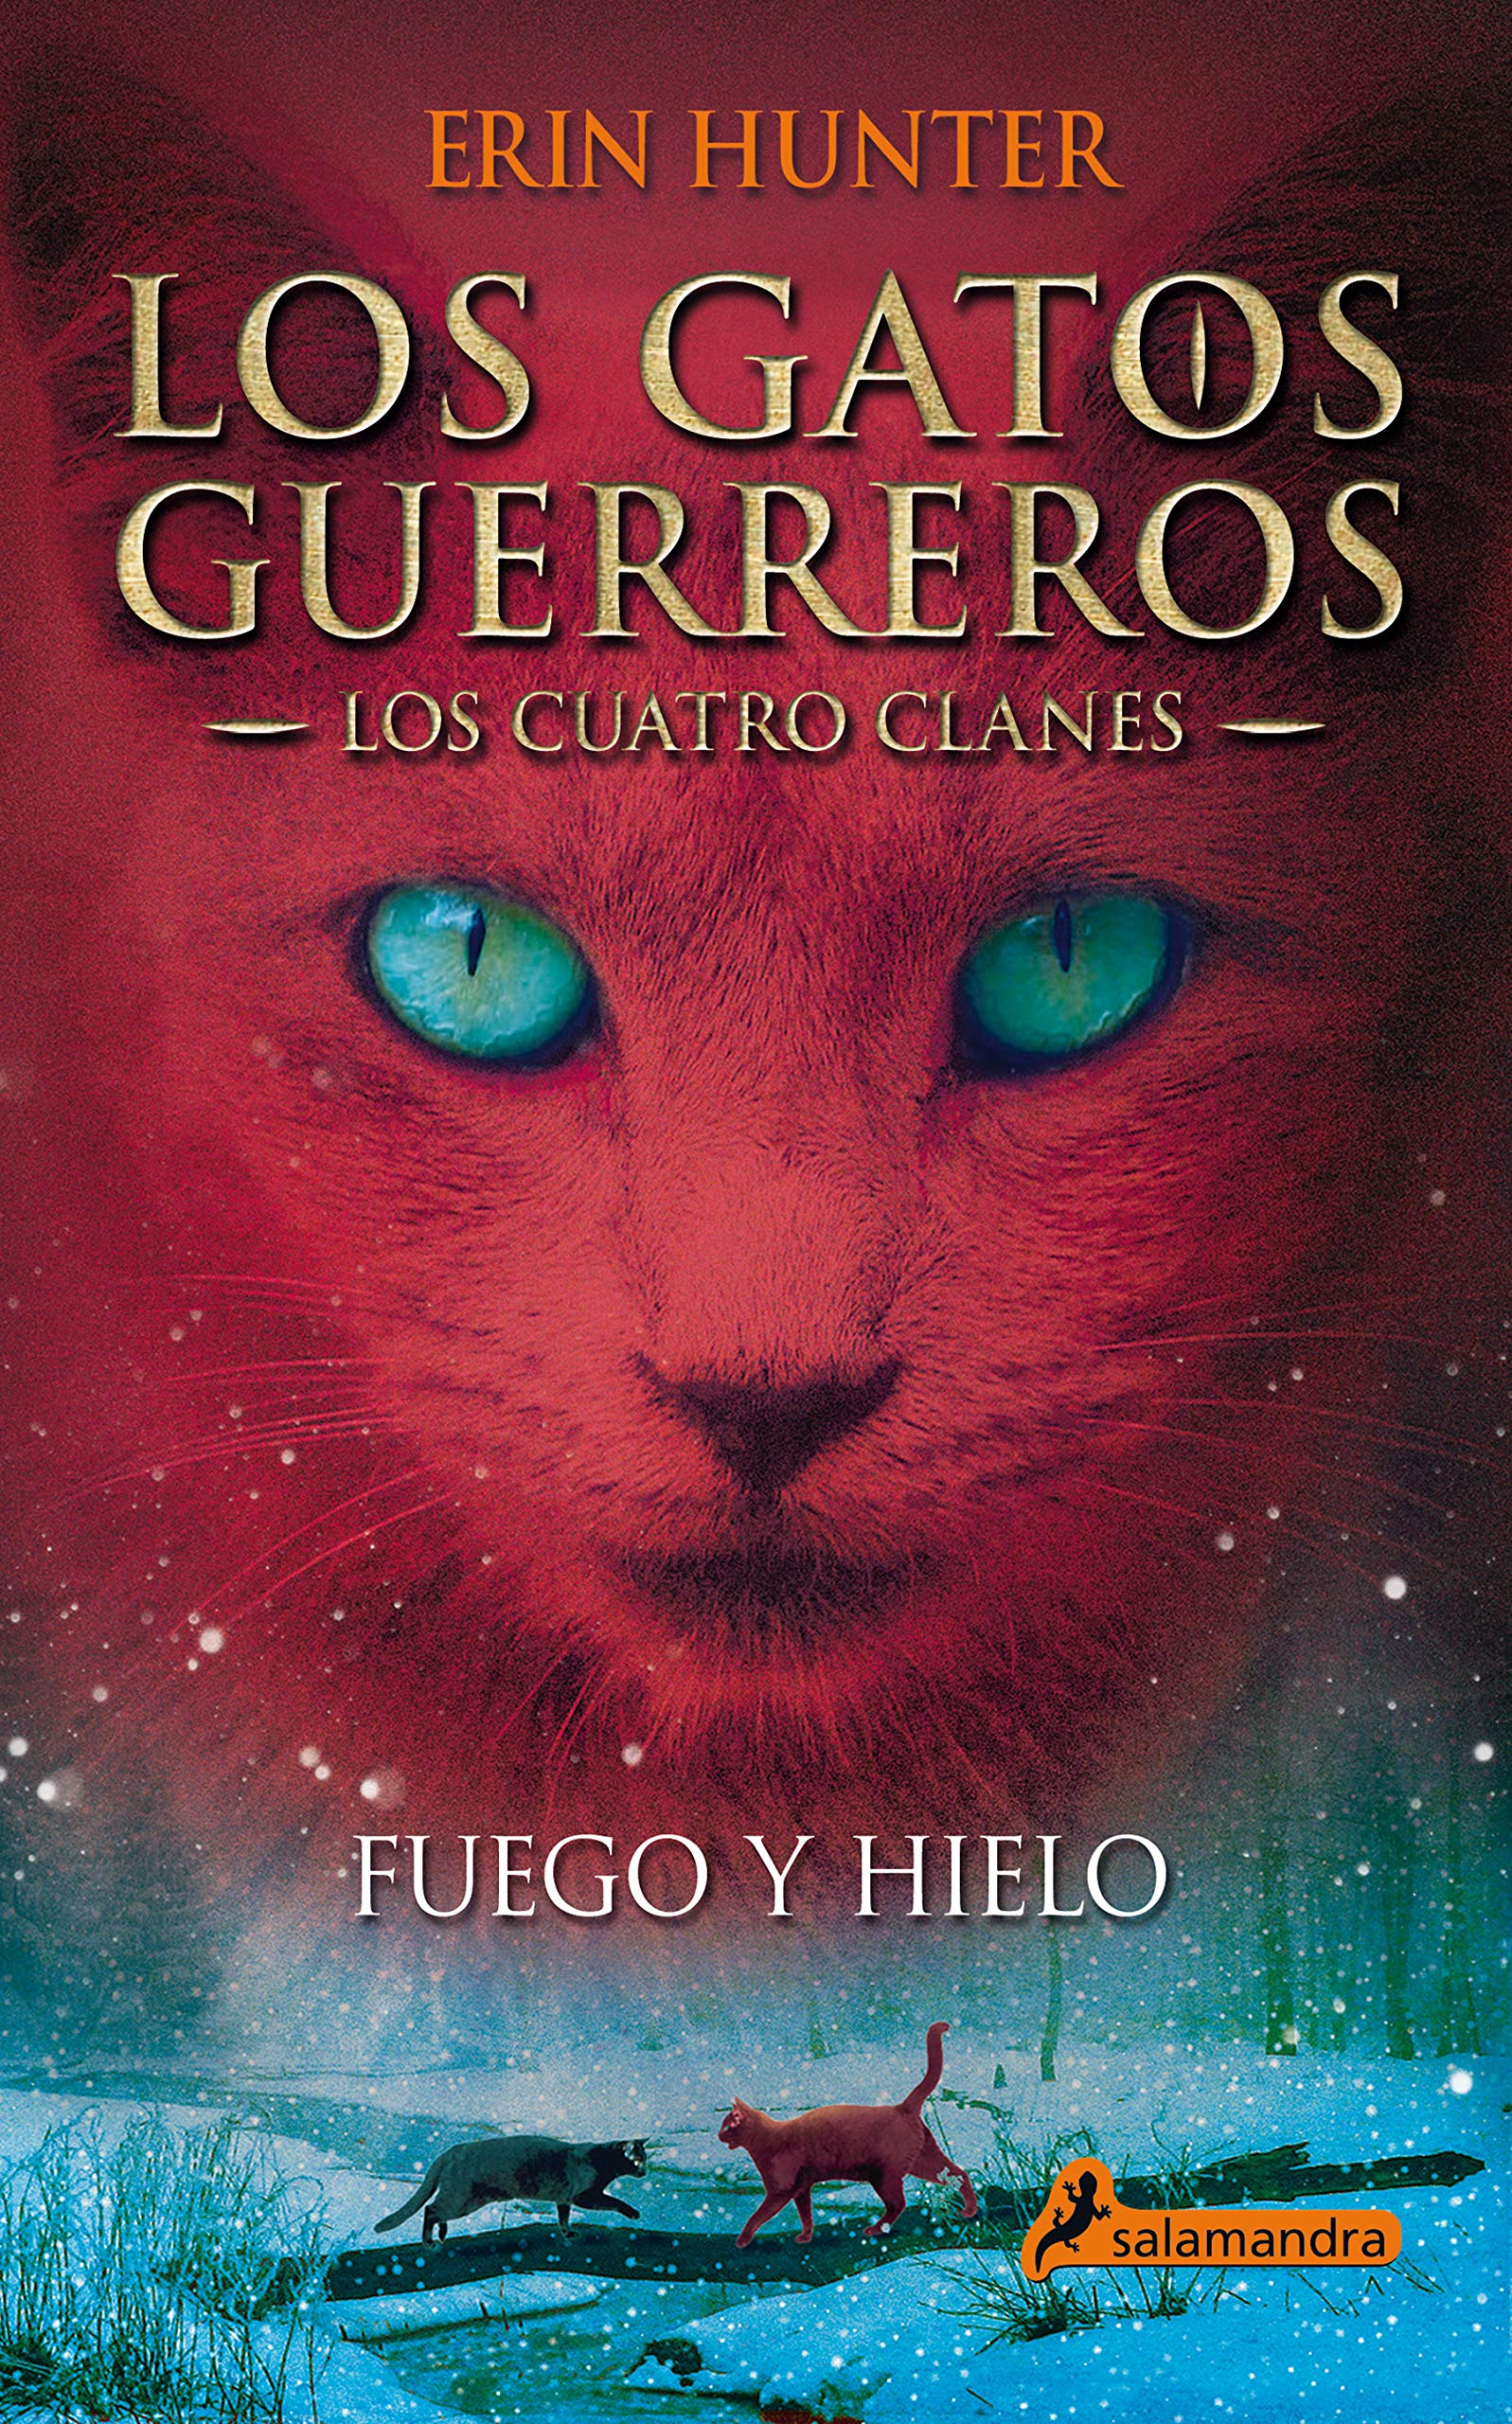 Fuego Y Hielo Fire And Ice Gatos Guerreros Warriors Spanish Edition 9788498384604 Hunter Erin Books